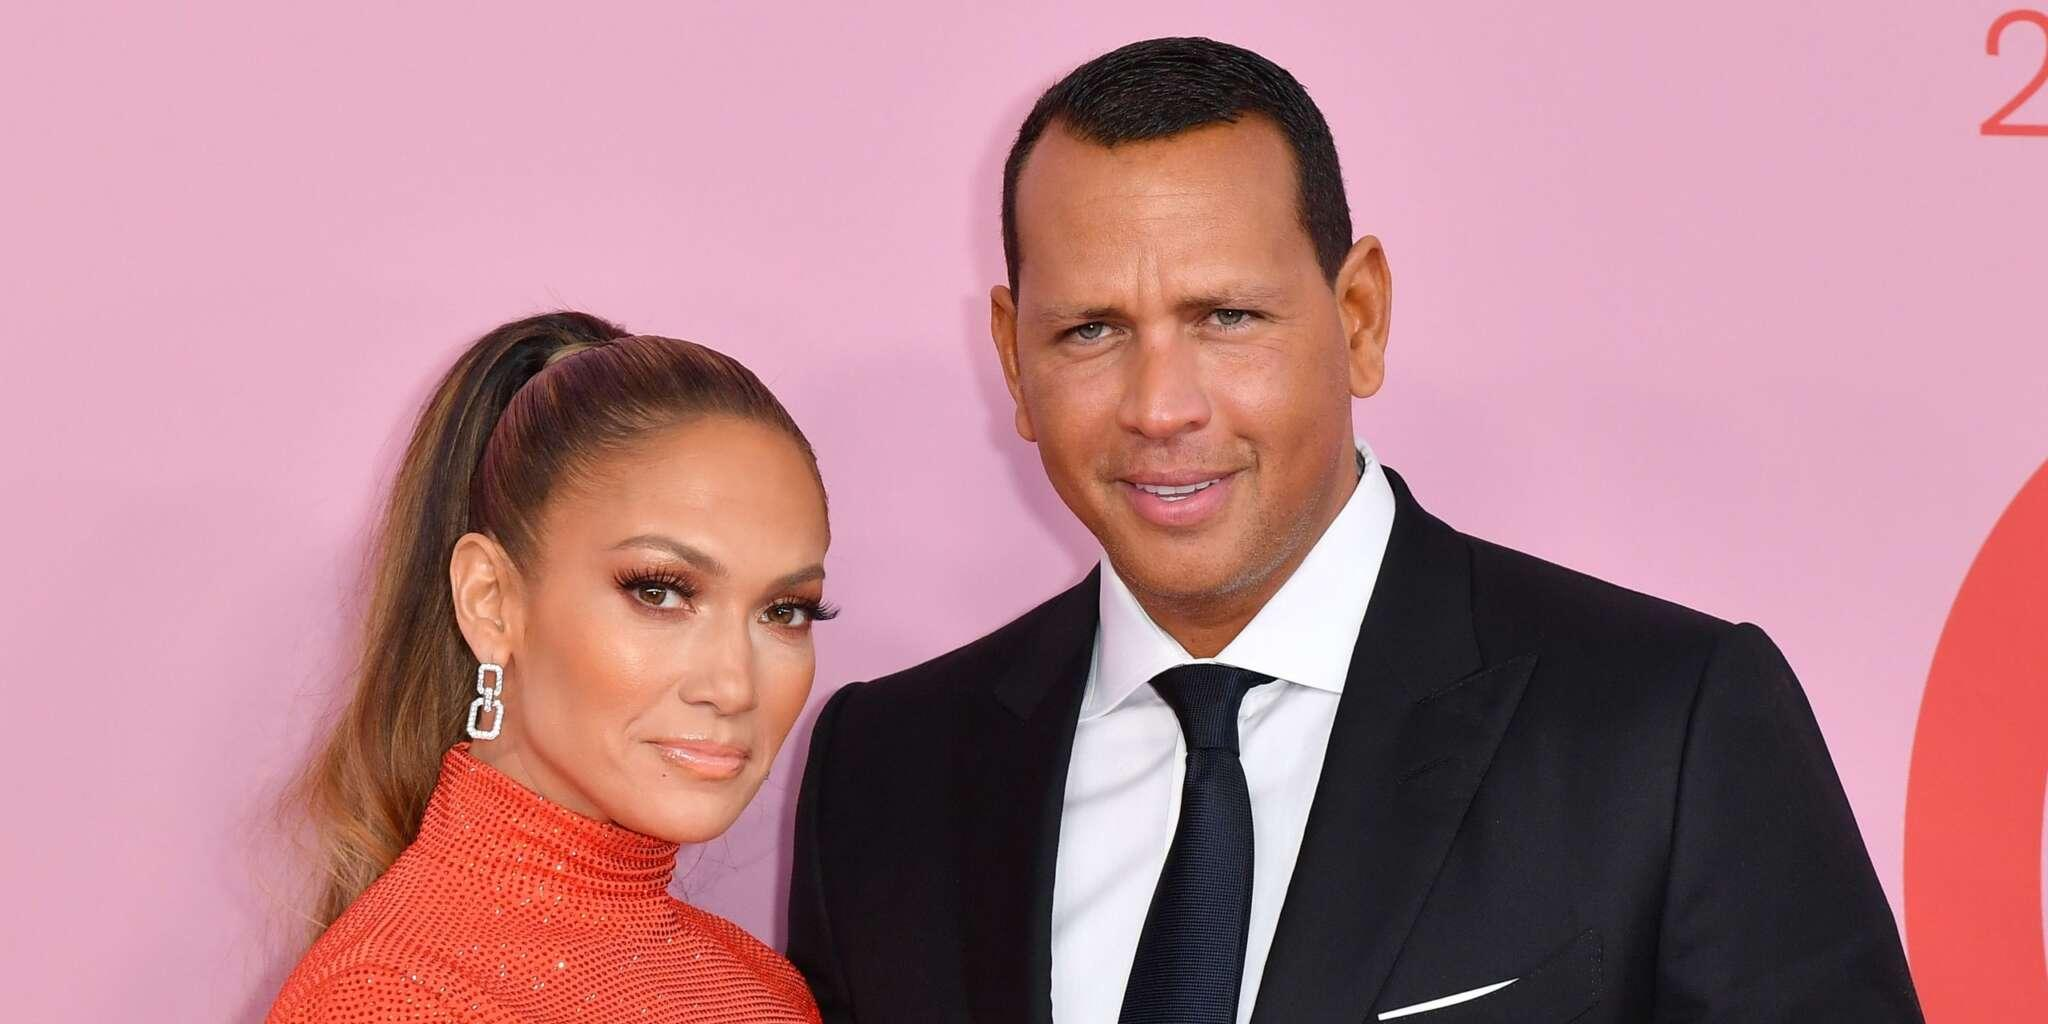 Jennifer Lopez And Alex Rodriguez: The Truth About Their Relationship Status - Source Says It's 'Hanging By A Thread!'